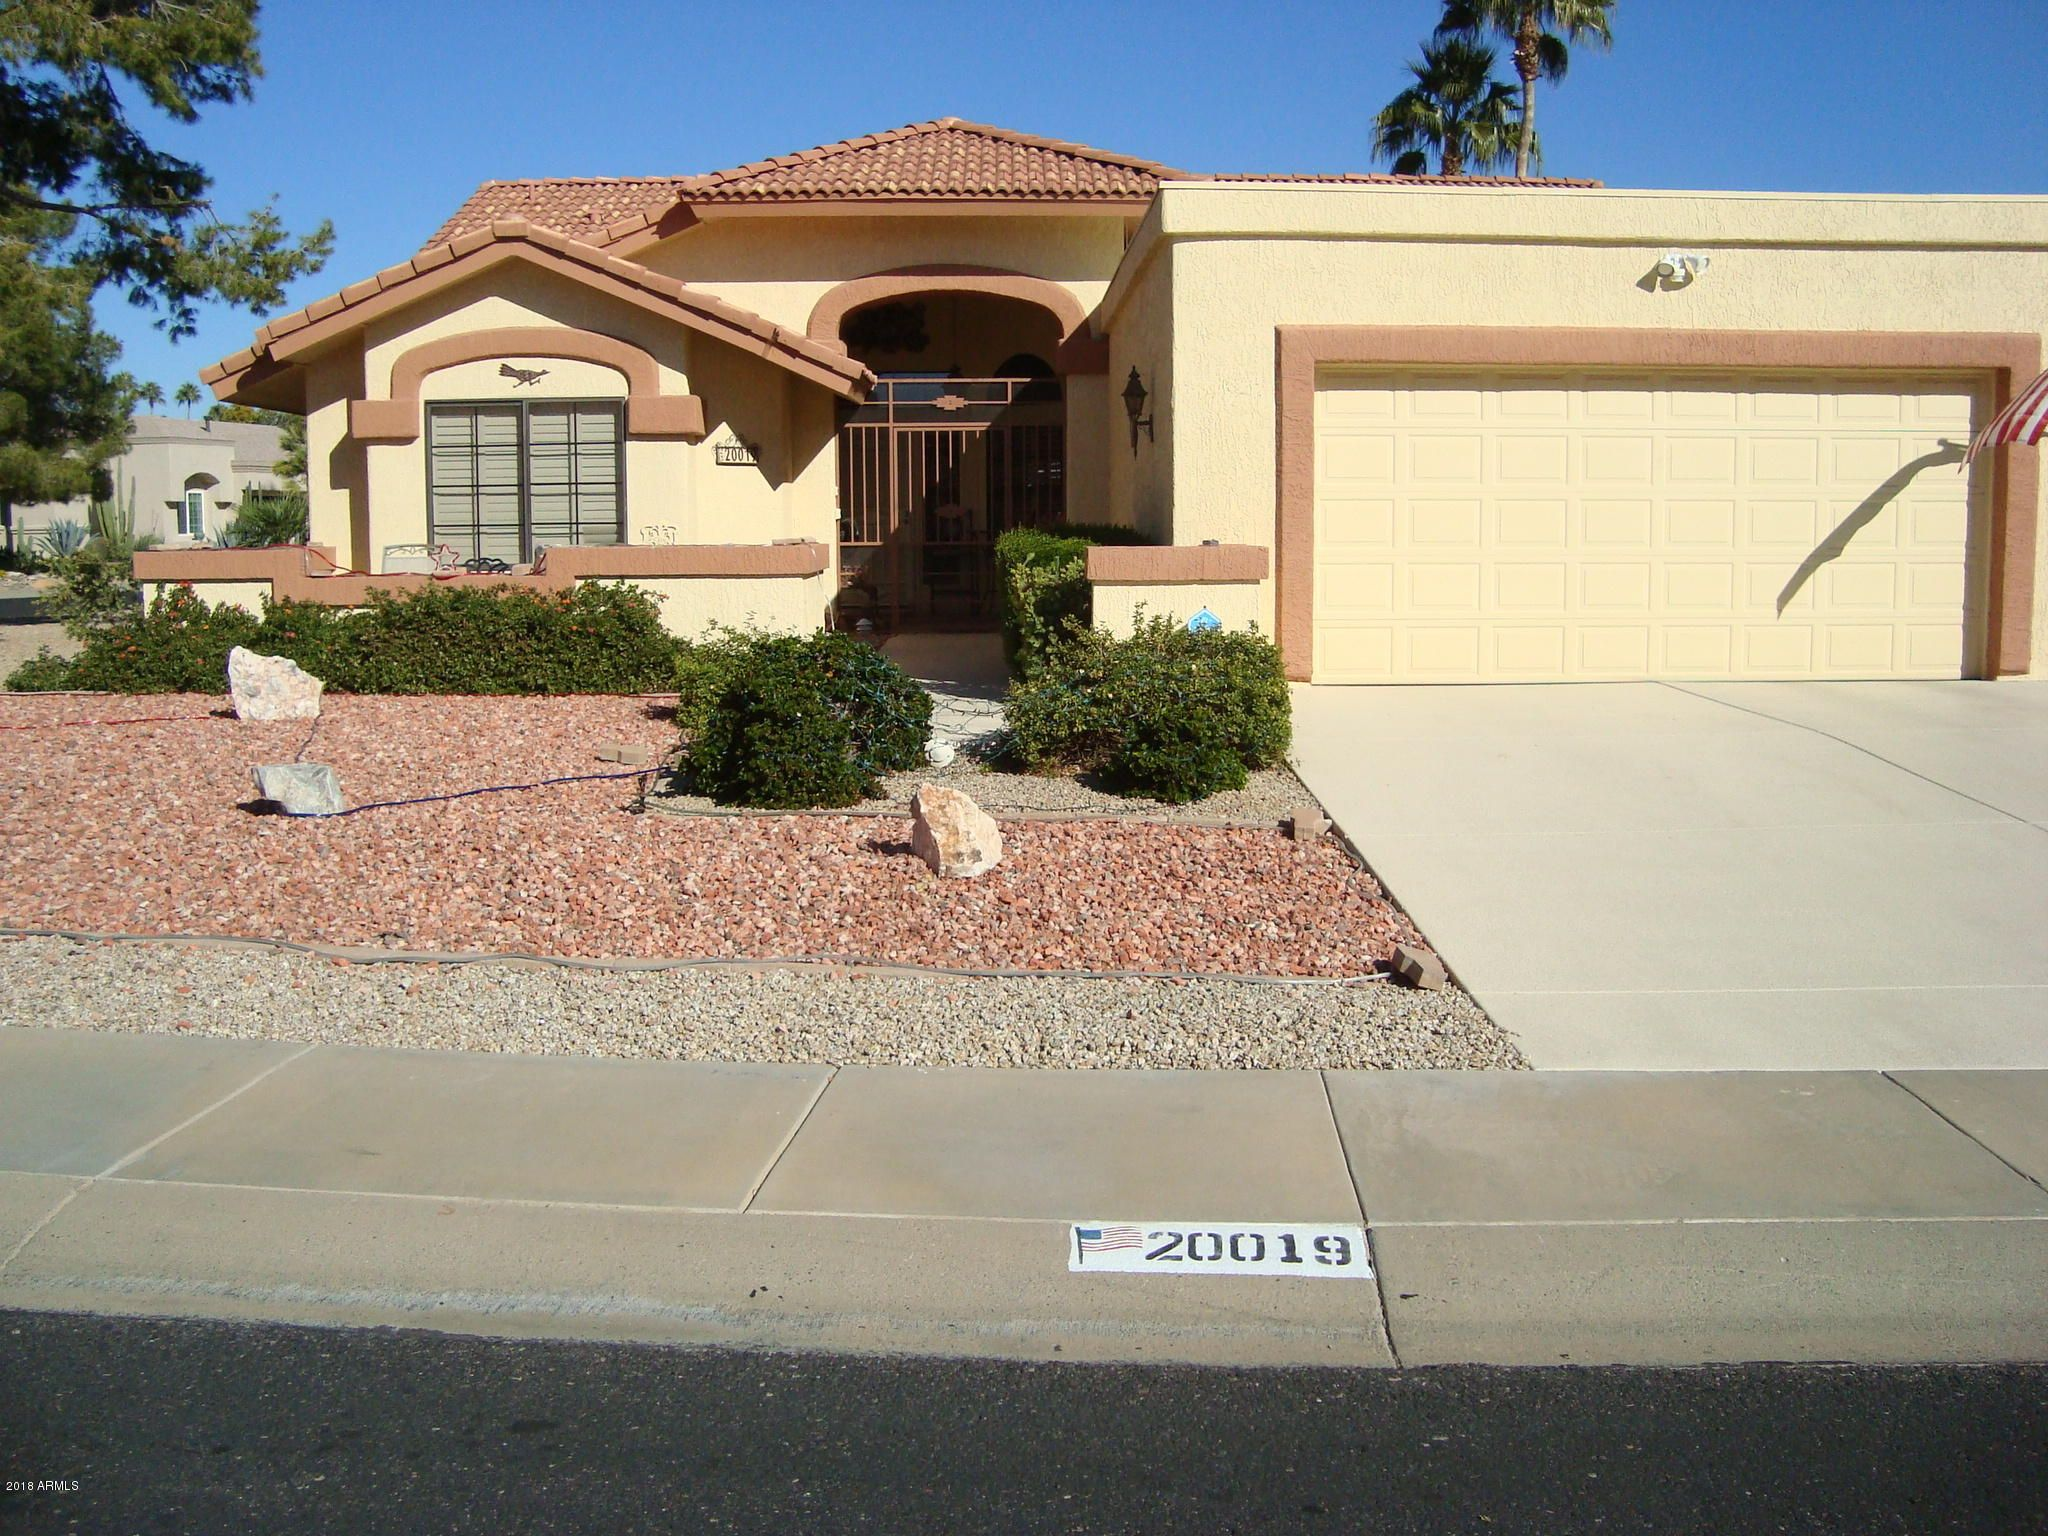 Admirable 20019 N Ascot Dr Sun City West Az 85375 2 Bed 2 5 Bath Single Family Home Mls 5859436 65 Photos Trulia Beutiful Home Inspiration Aditmahrainfo